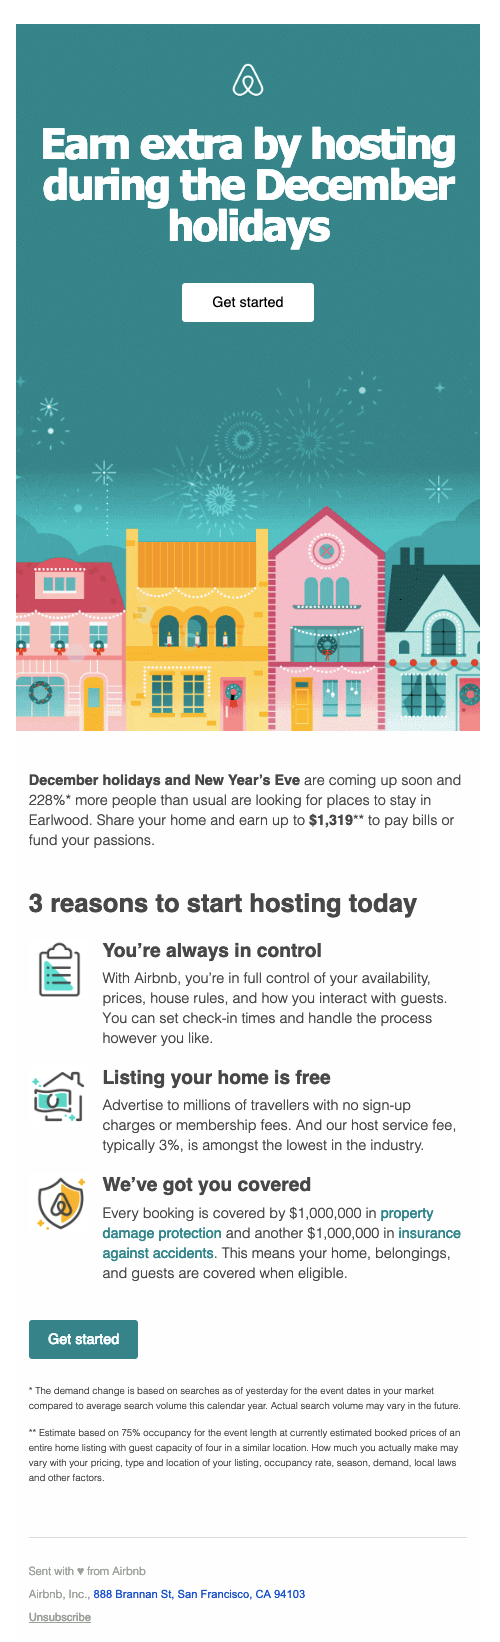 Airbnb's Growth Strategy: How they attract and retain 150 million